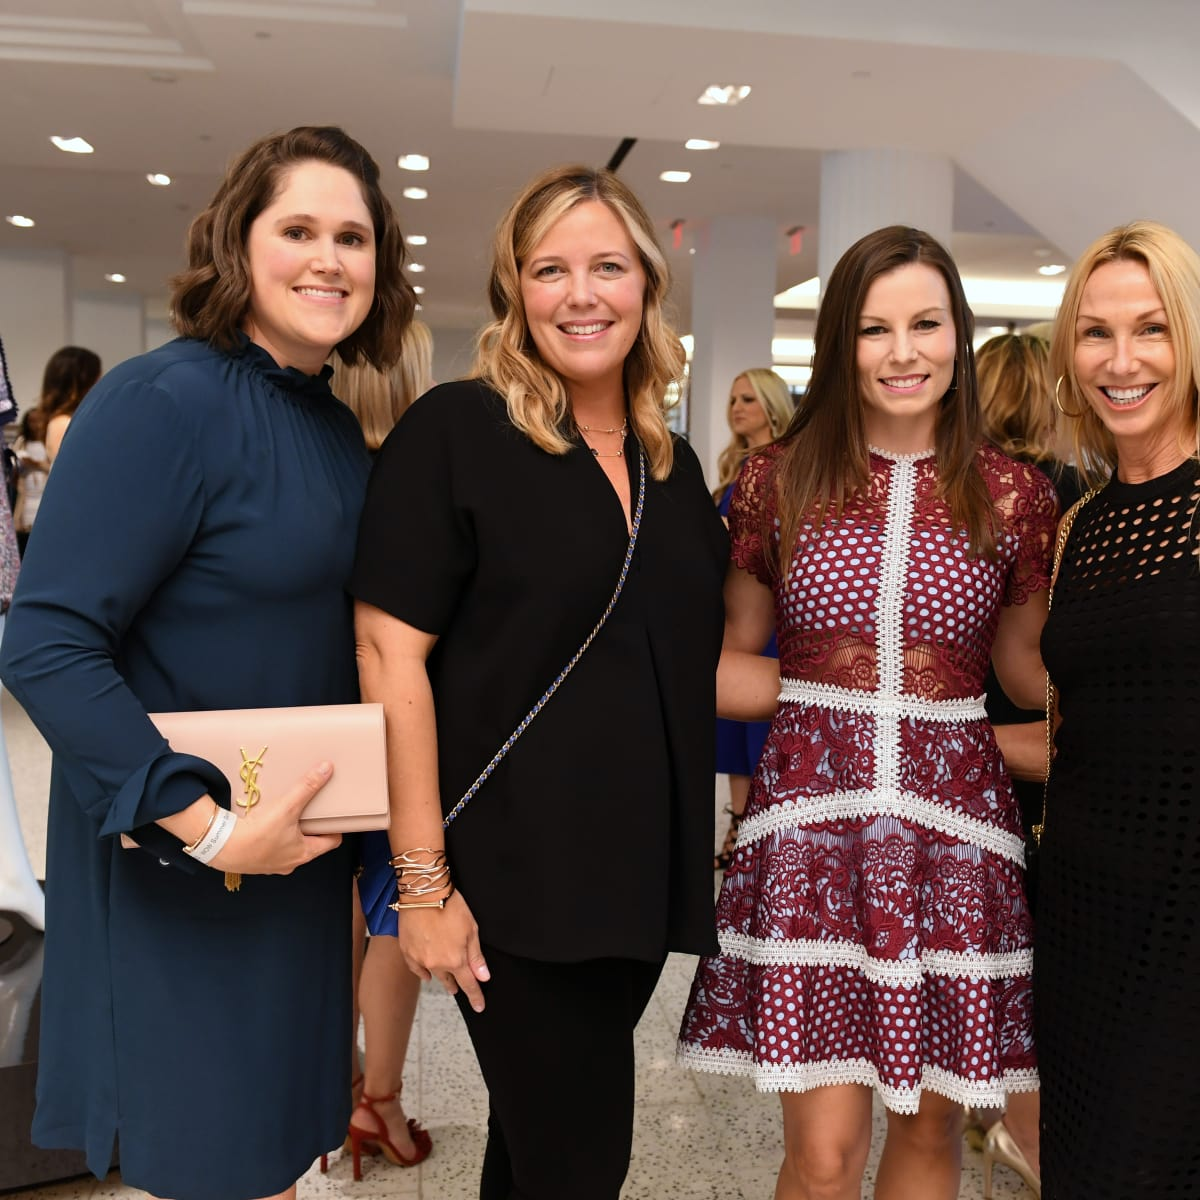 Houston, Women of Wardrobe Summer Soiree, August 2017, Kim Hartz, Melissa Sugulas, Alison Johnson, Melissa Dobrowski